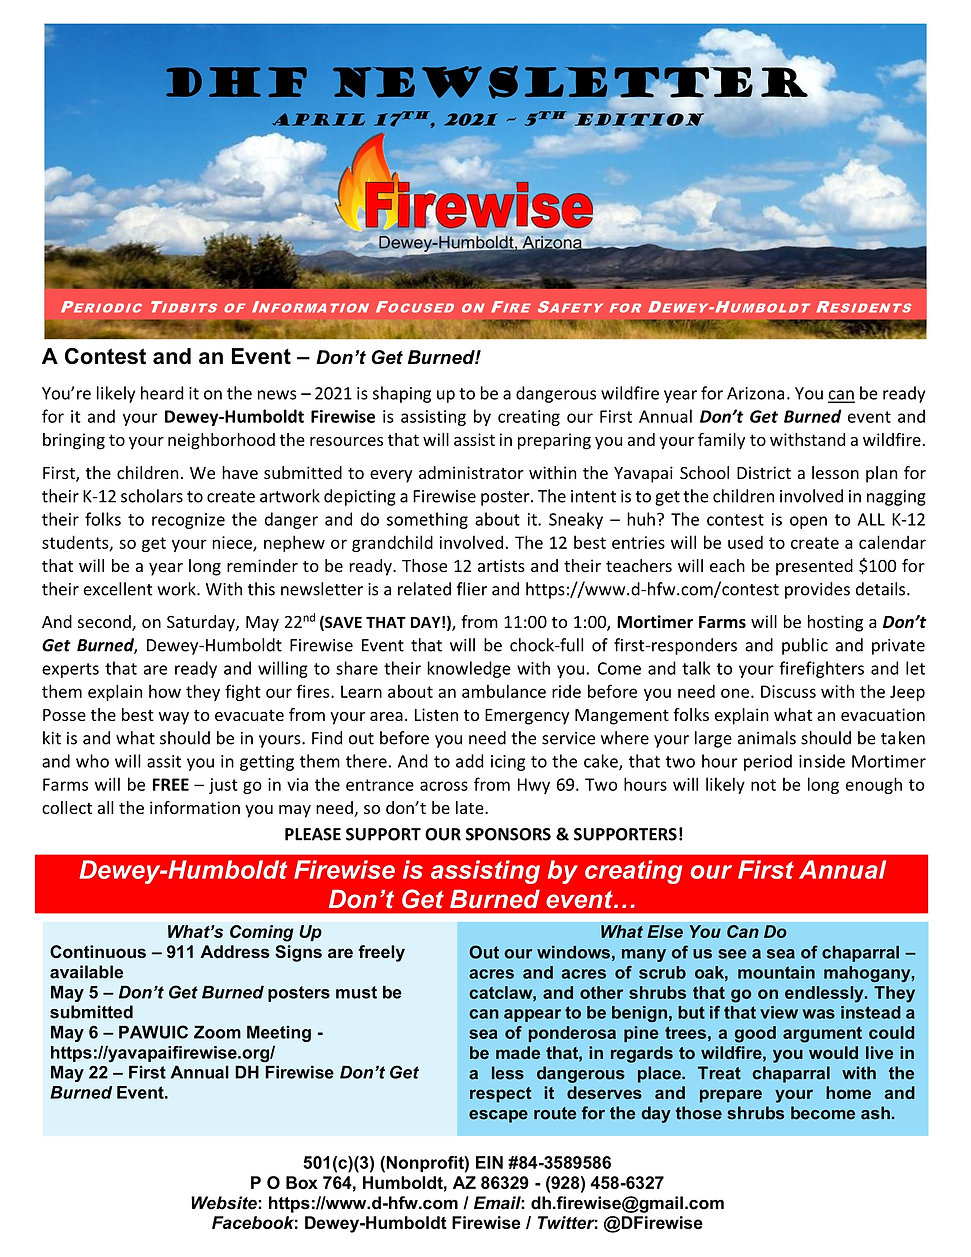 DHF Newsletter 5 - Don't Get Burned Cont